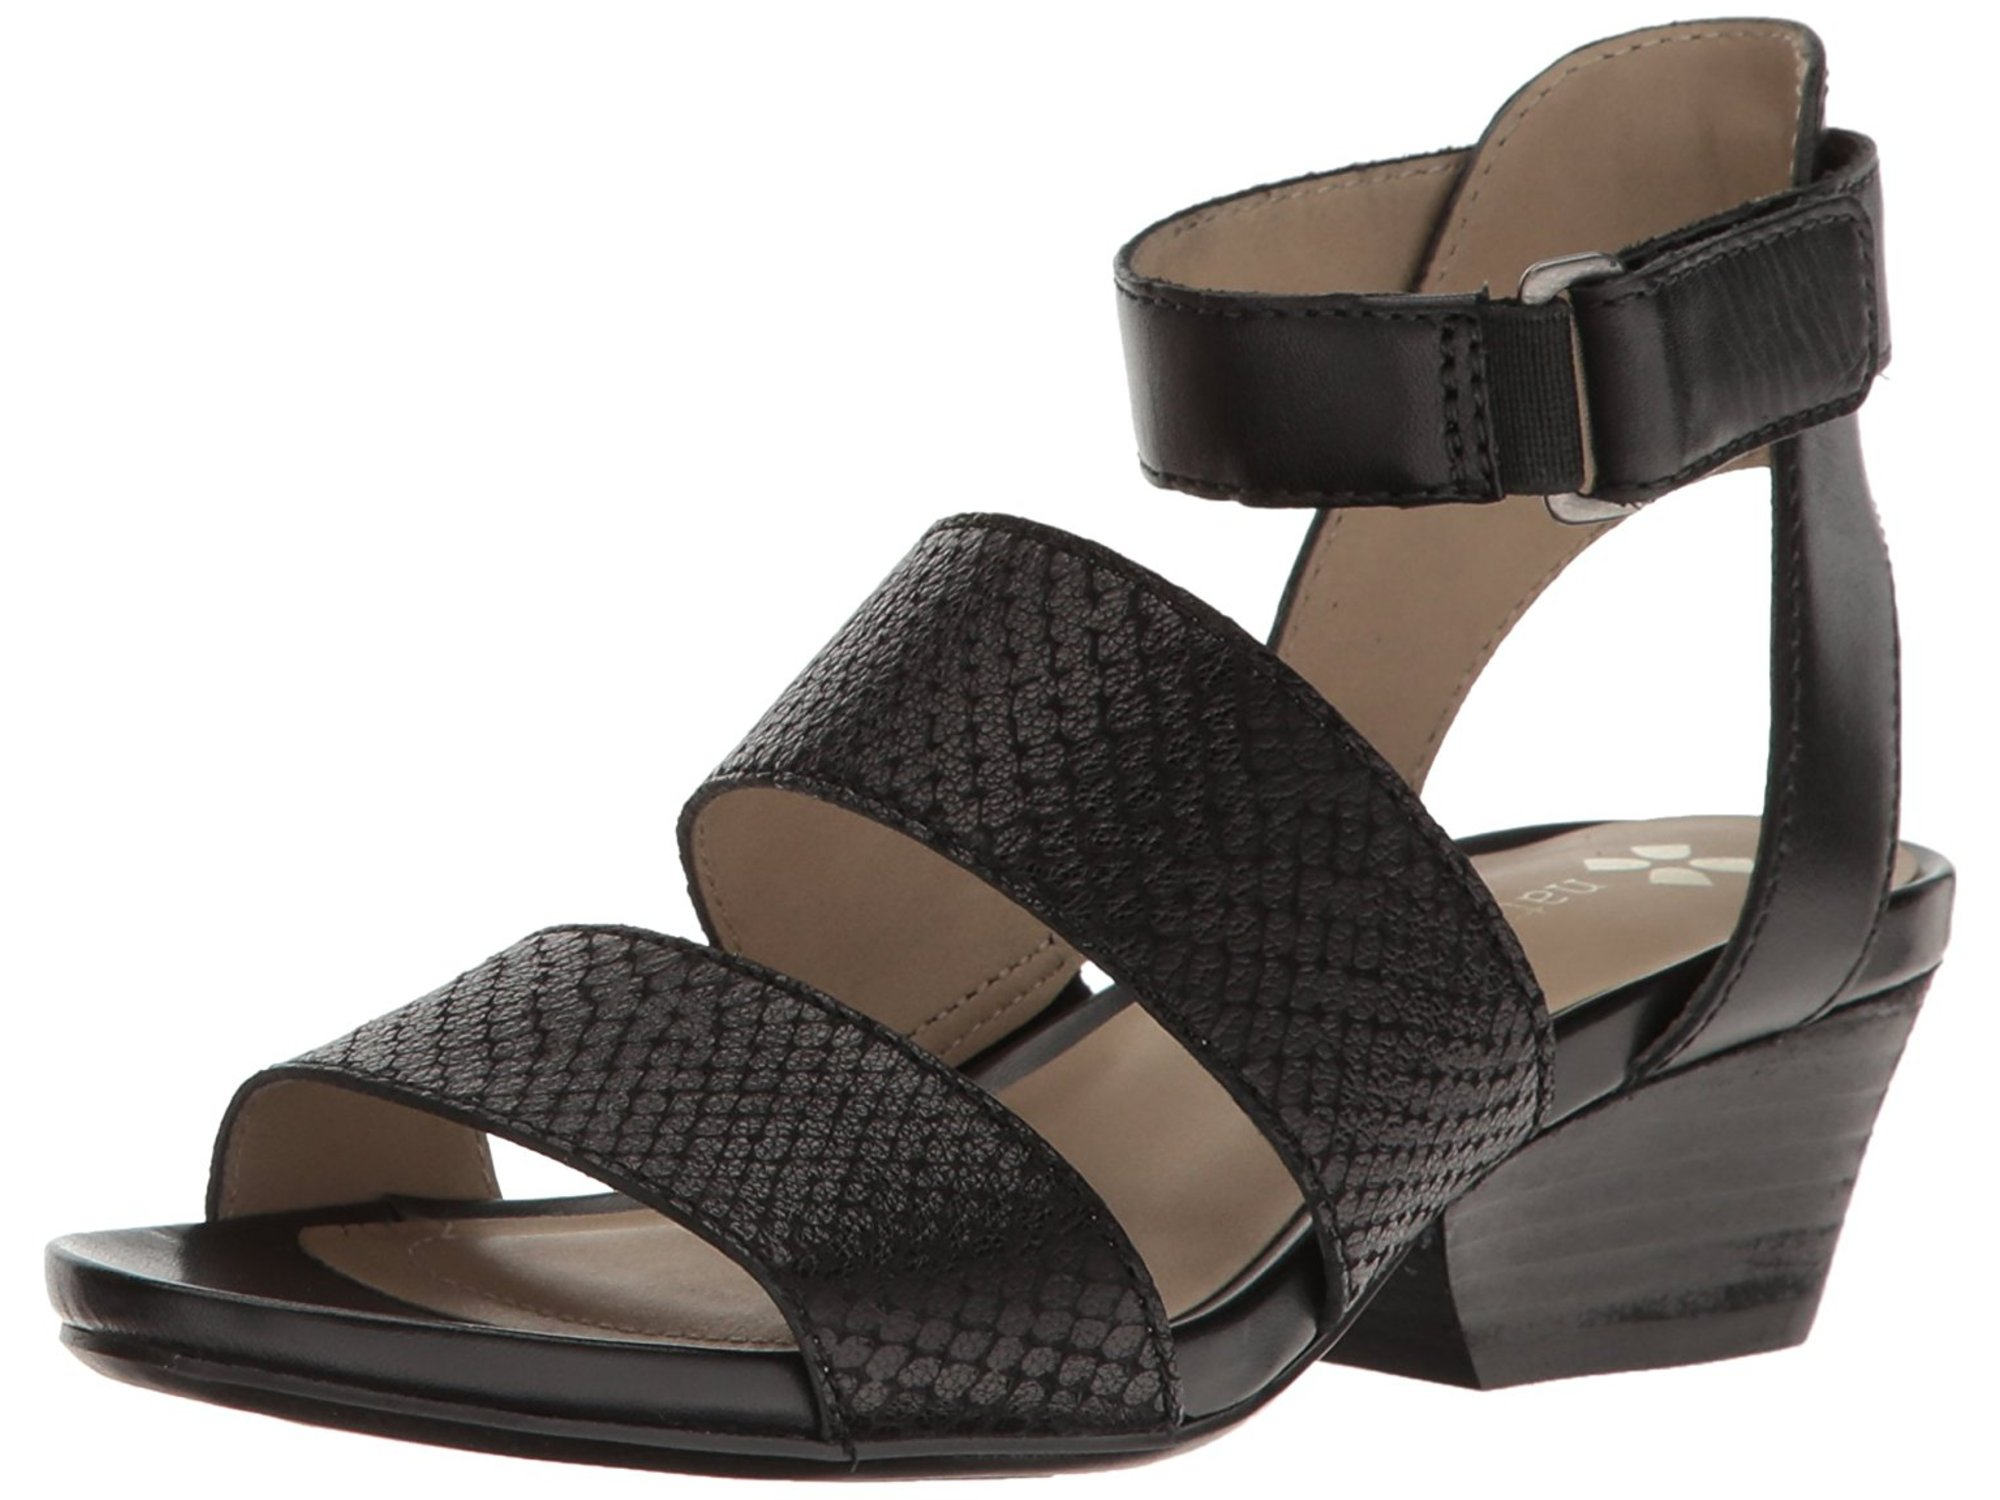 Naturalizer Womens Gracelyn Leather Open Toe Casual Ankle Strap Sandals by Naturalizer